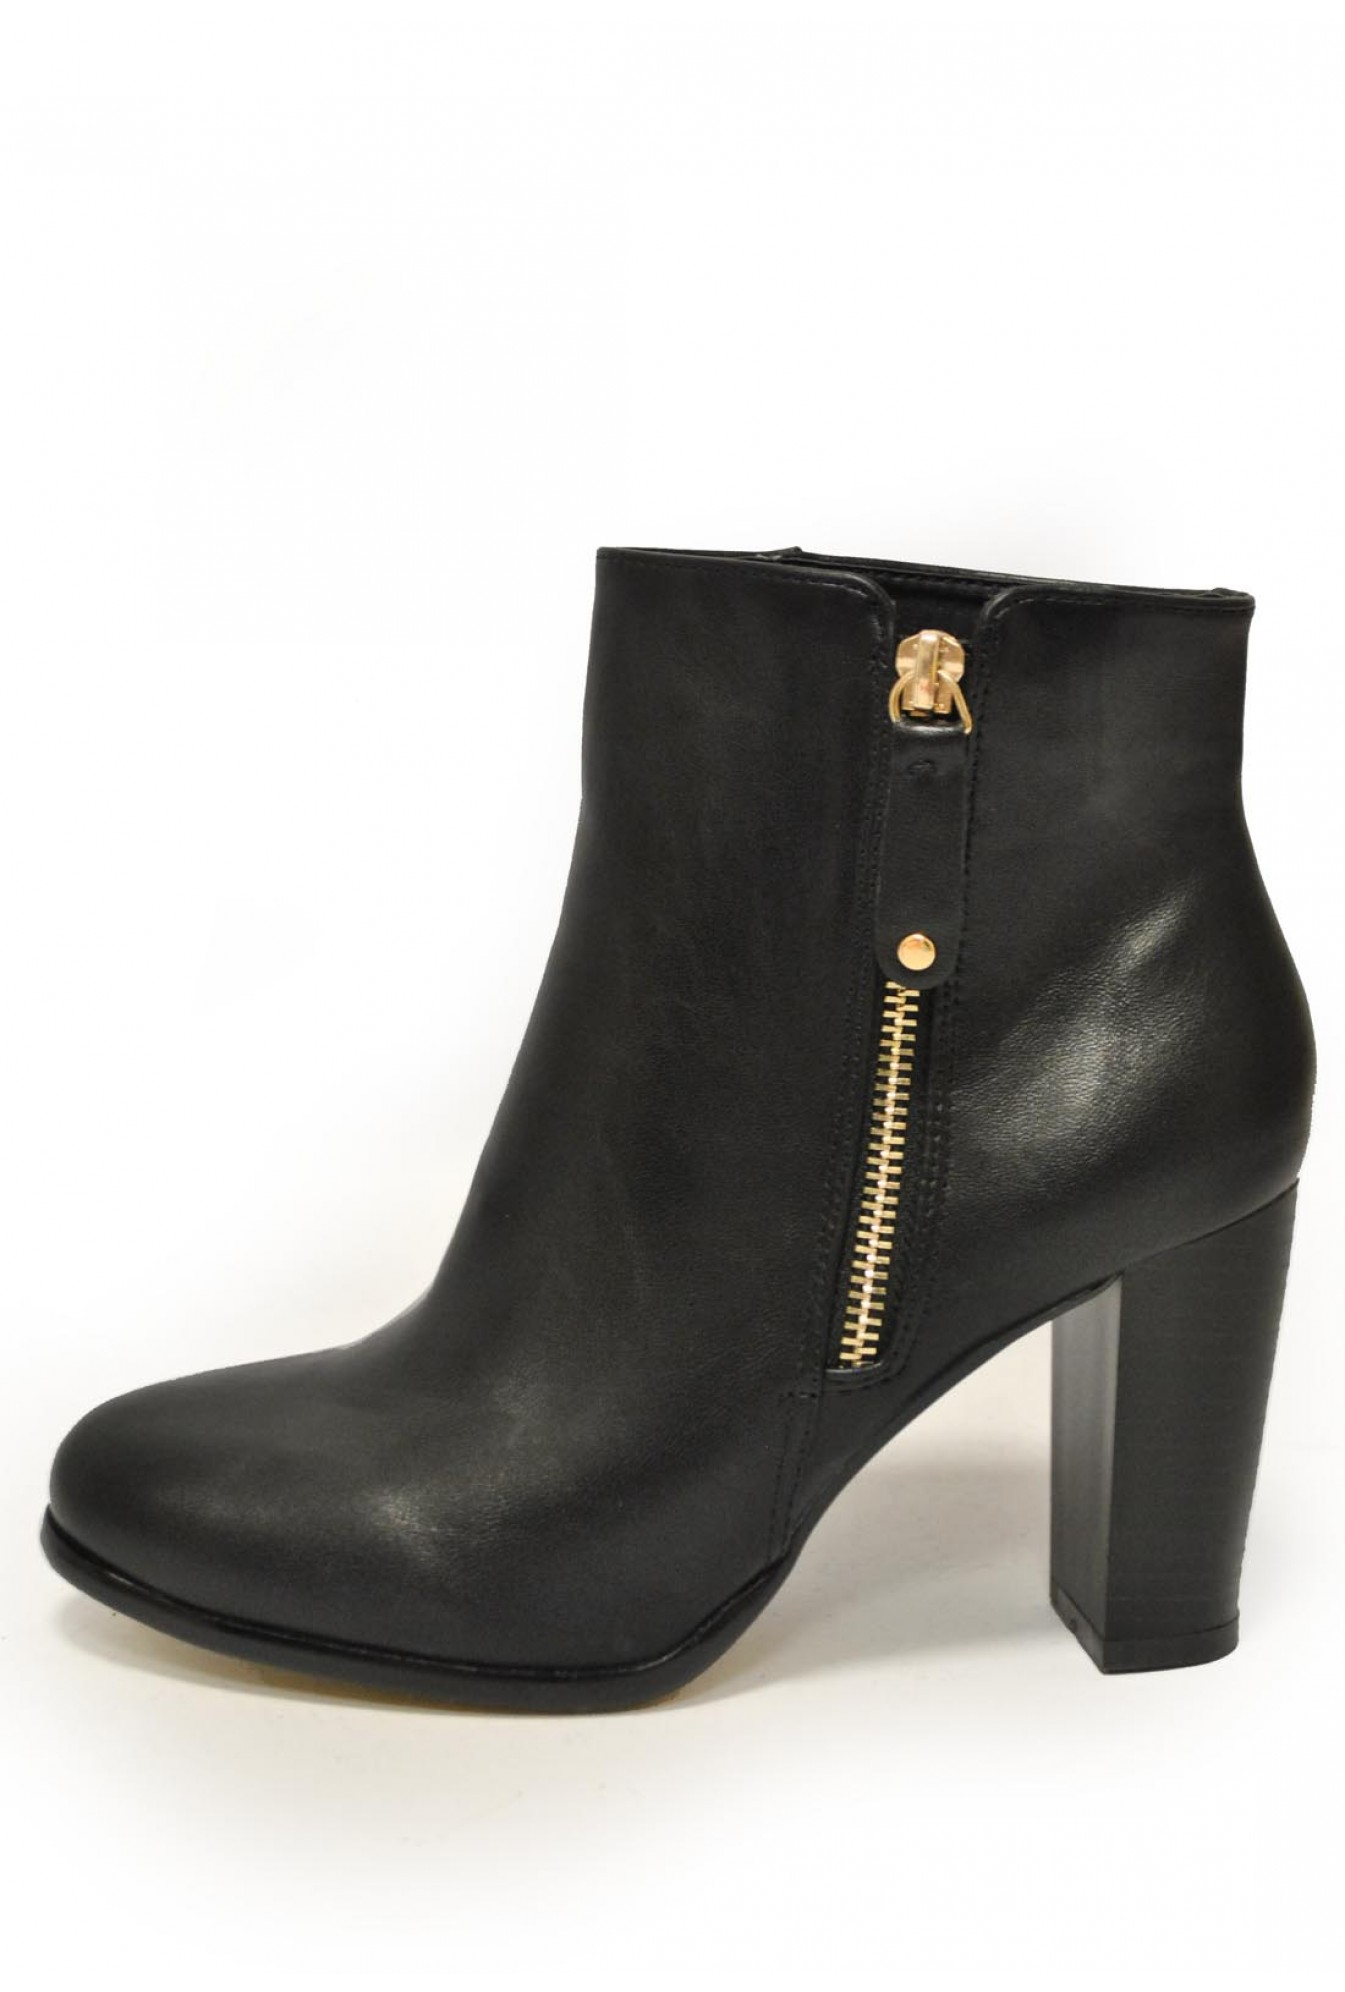 27f244f76a3 More Views. Adeline Zip Ankle Boots in Black